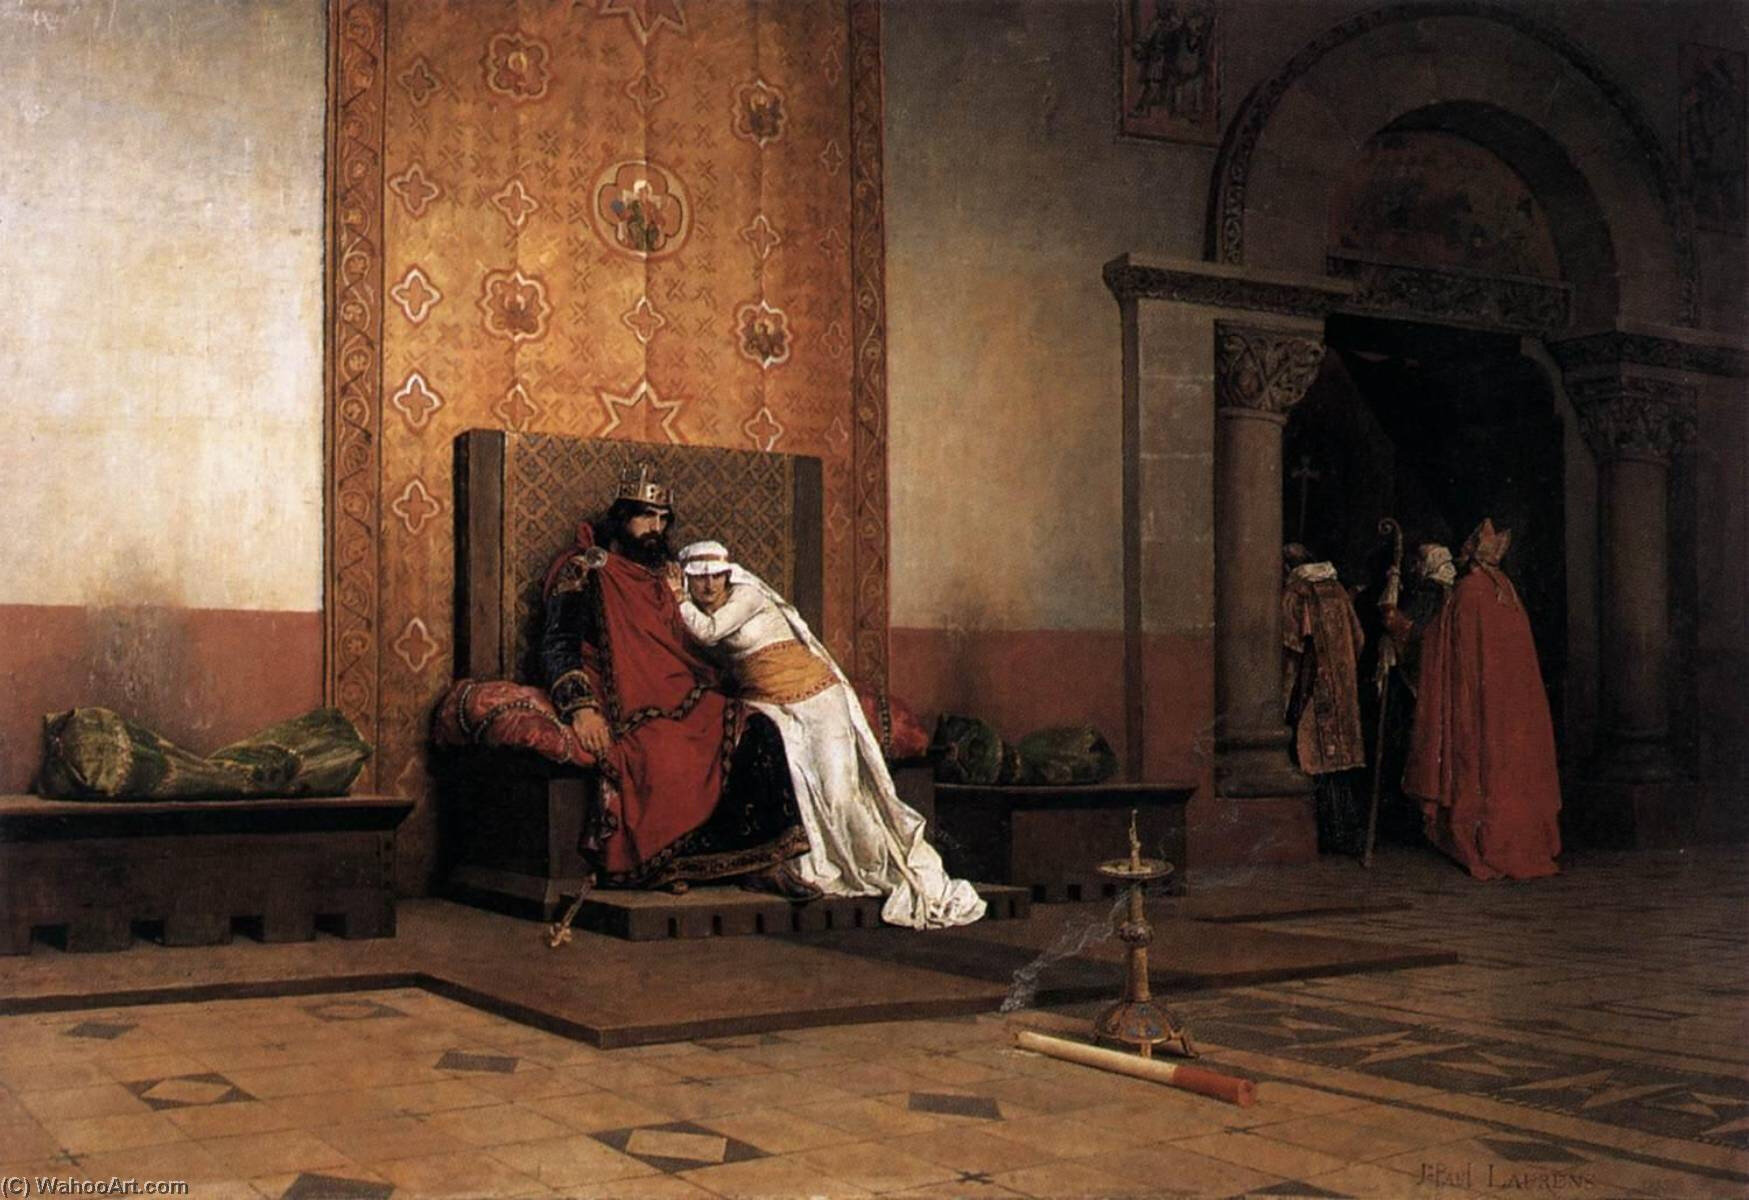 Jean-Paul-Laurens-The-Excommunication-of-Robert-the-Pious